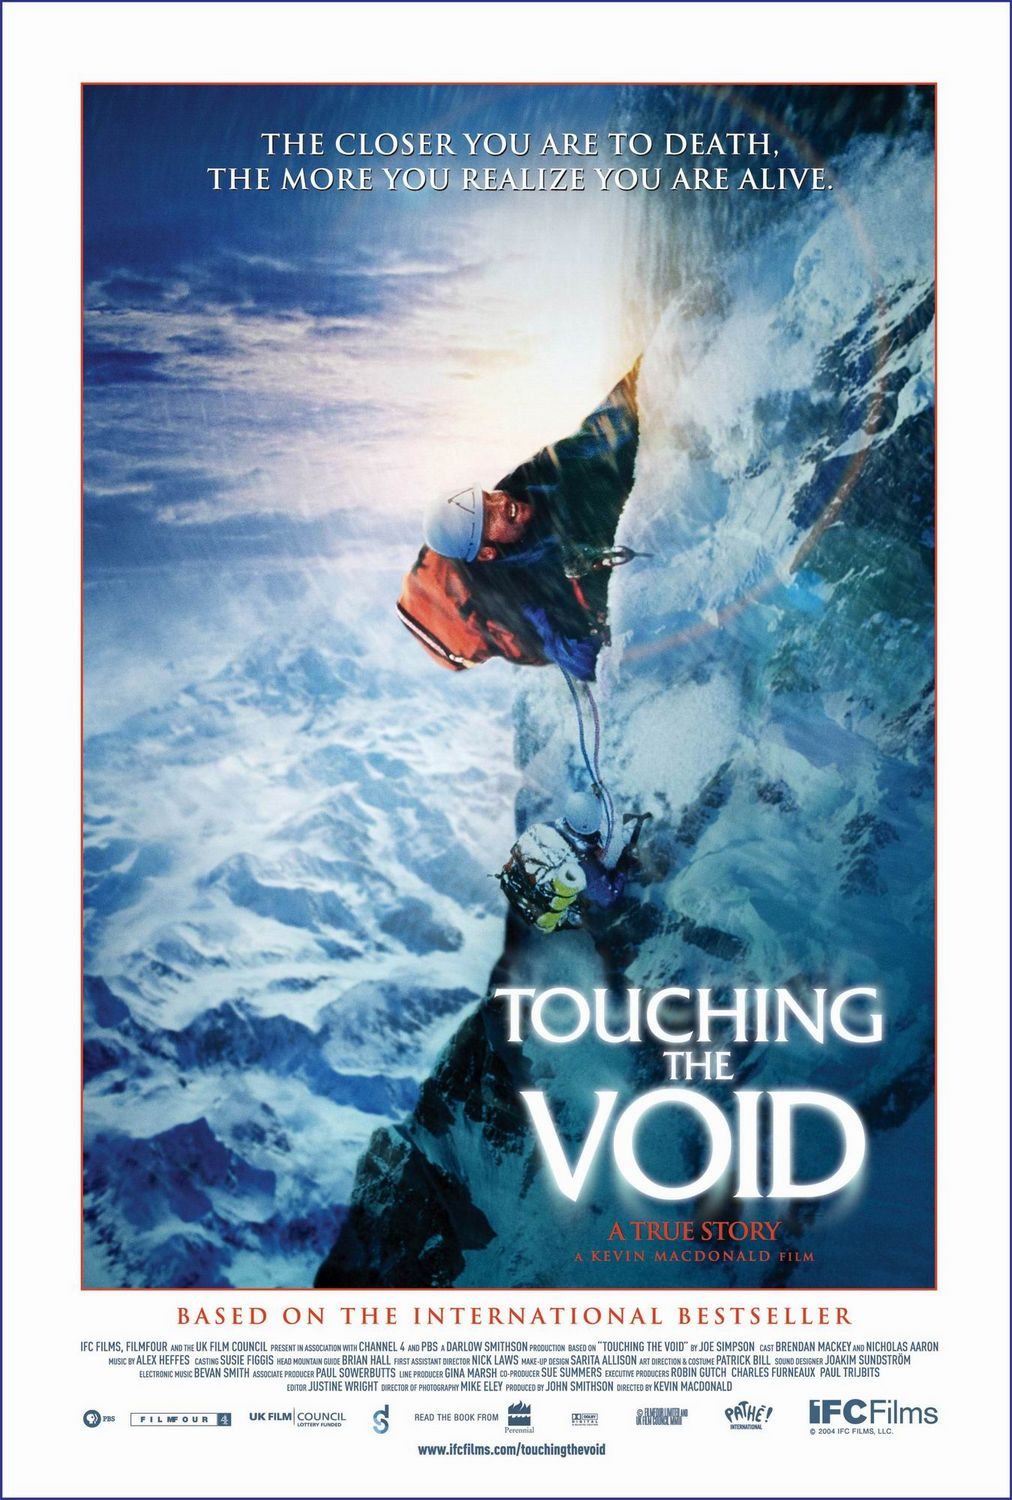 Touching the Void - Movie Poster!